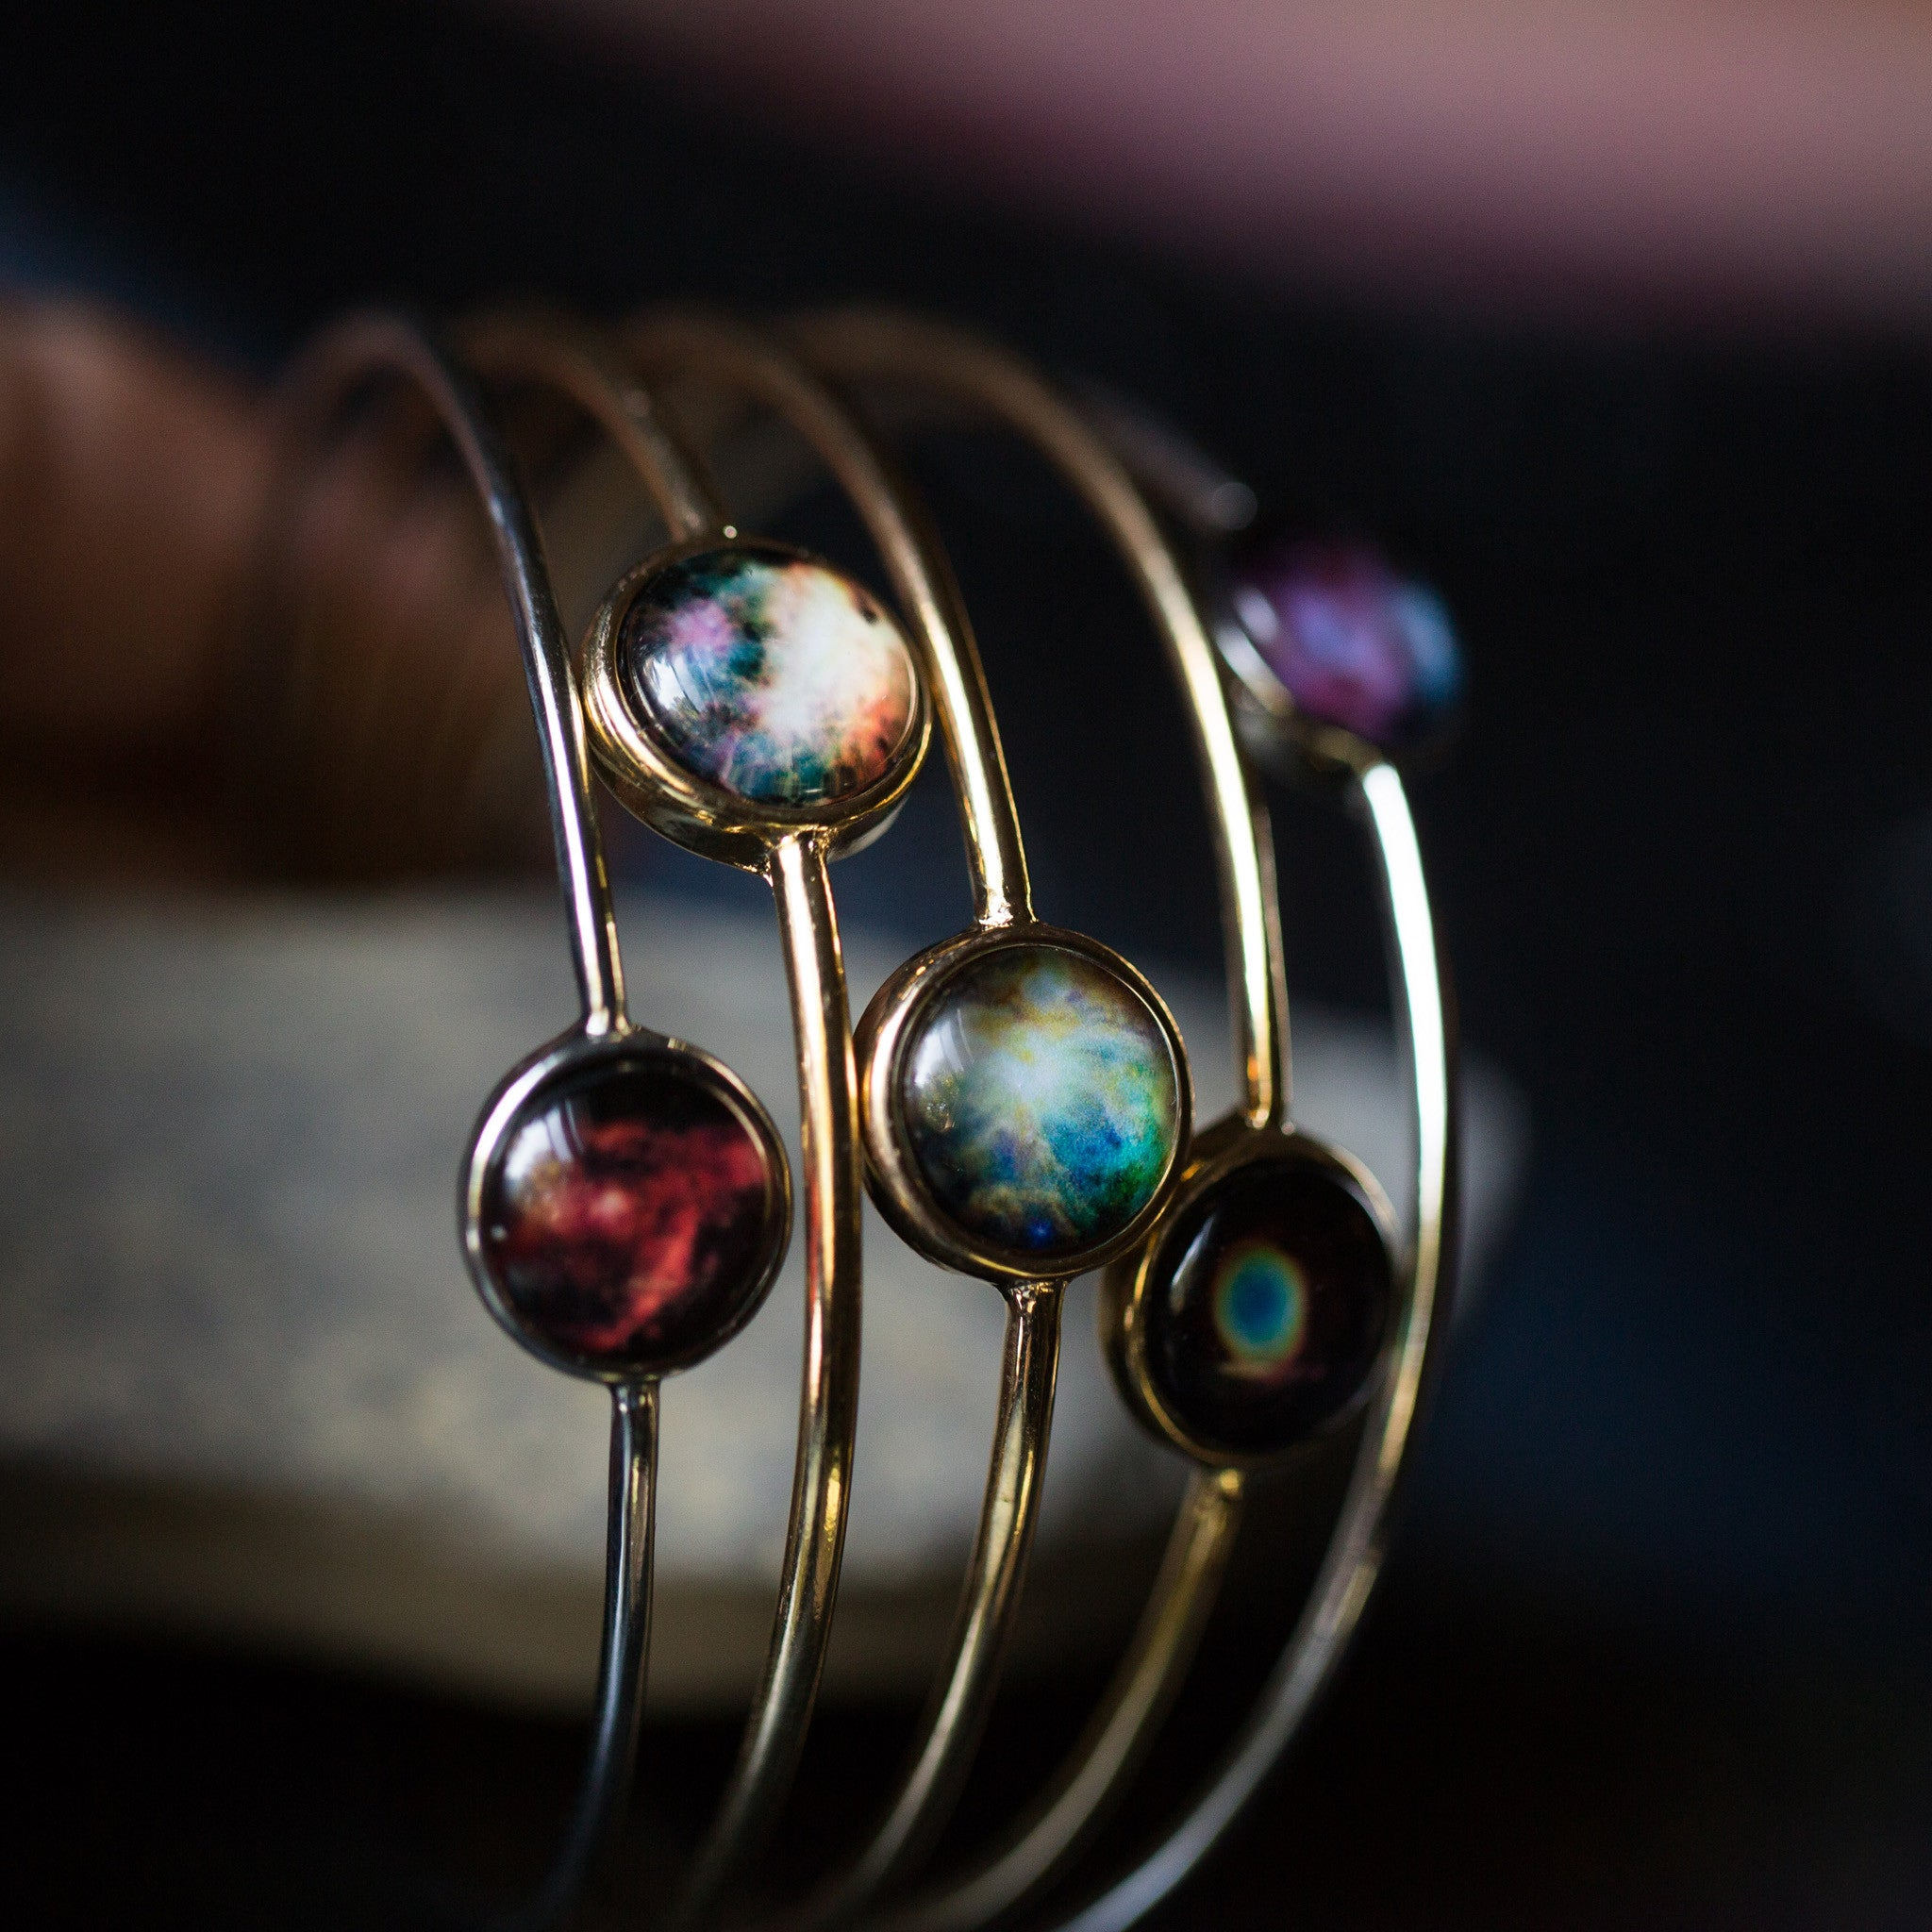 Galaxy Bangles with Bezel Setting in Gold or Silver - Choose your galaxy, nebula, planet, cosmic image from outer space - Hubble STEM astronomy fashion - shown as a stacked set of bracelets